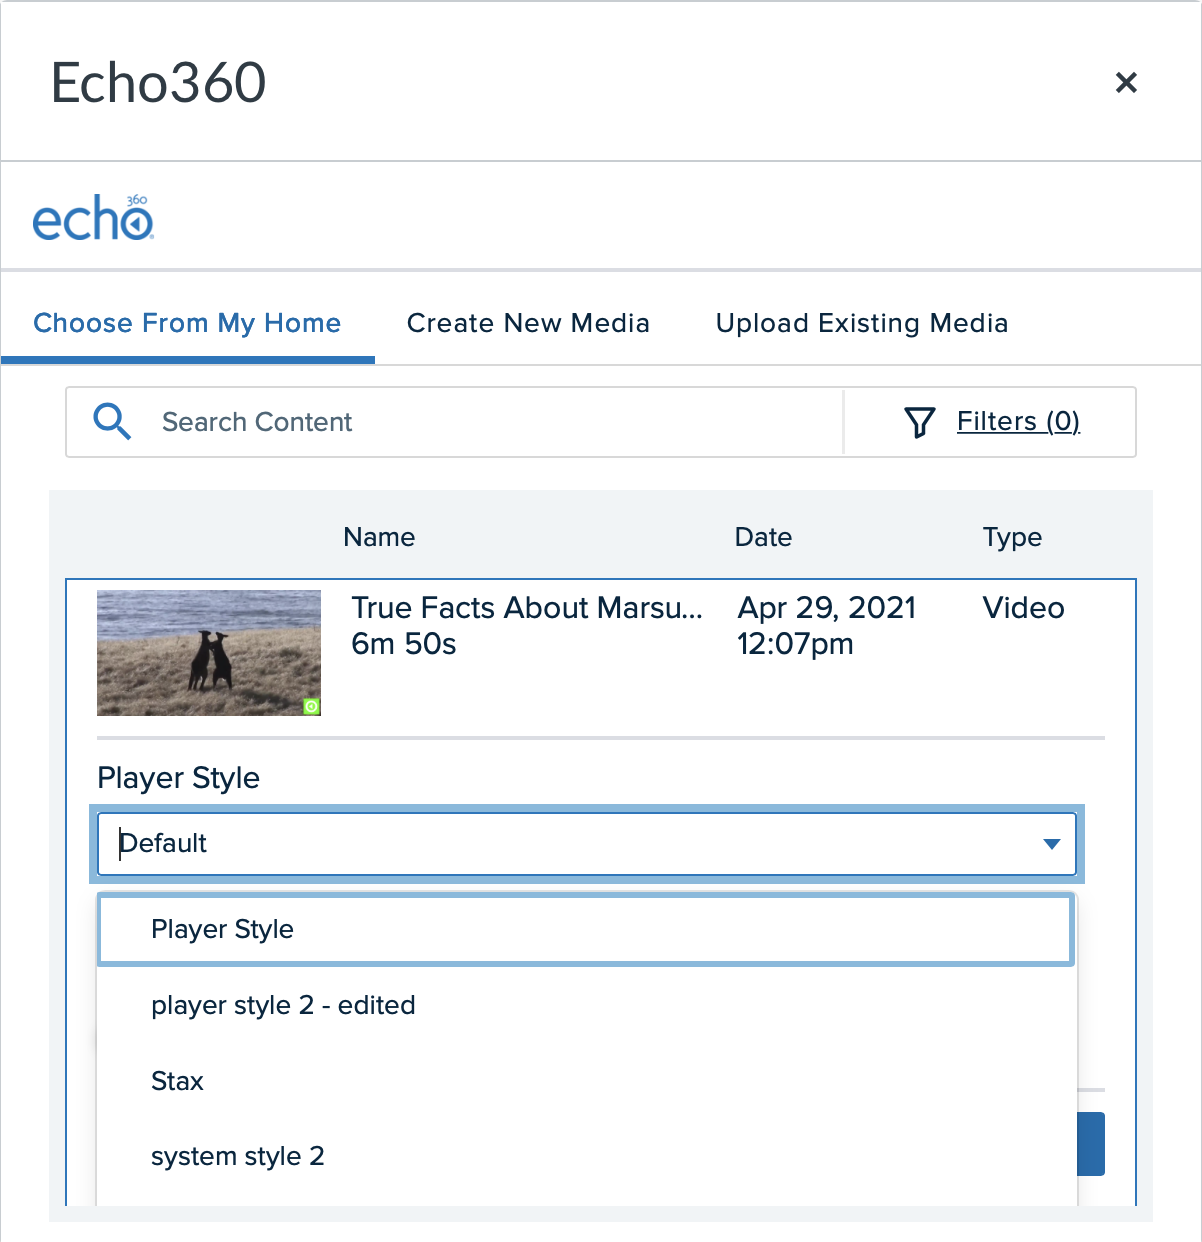 Embed Echo video selection list with item expanded and style drop-down list shown for steps as described